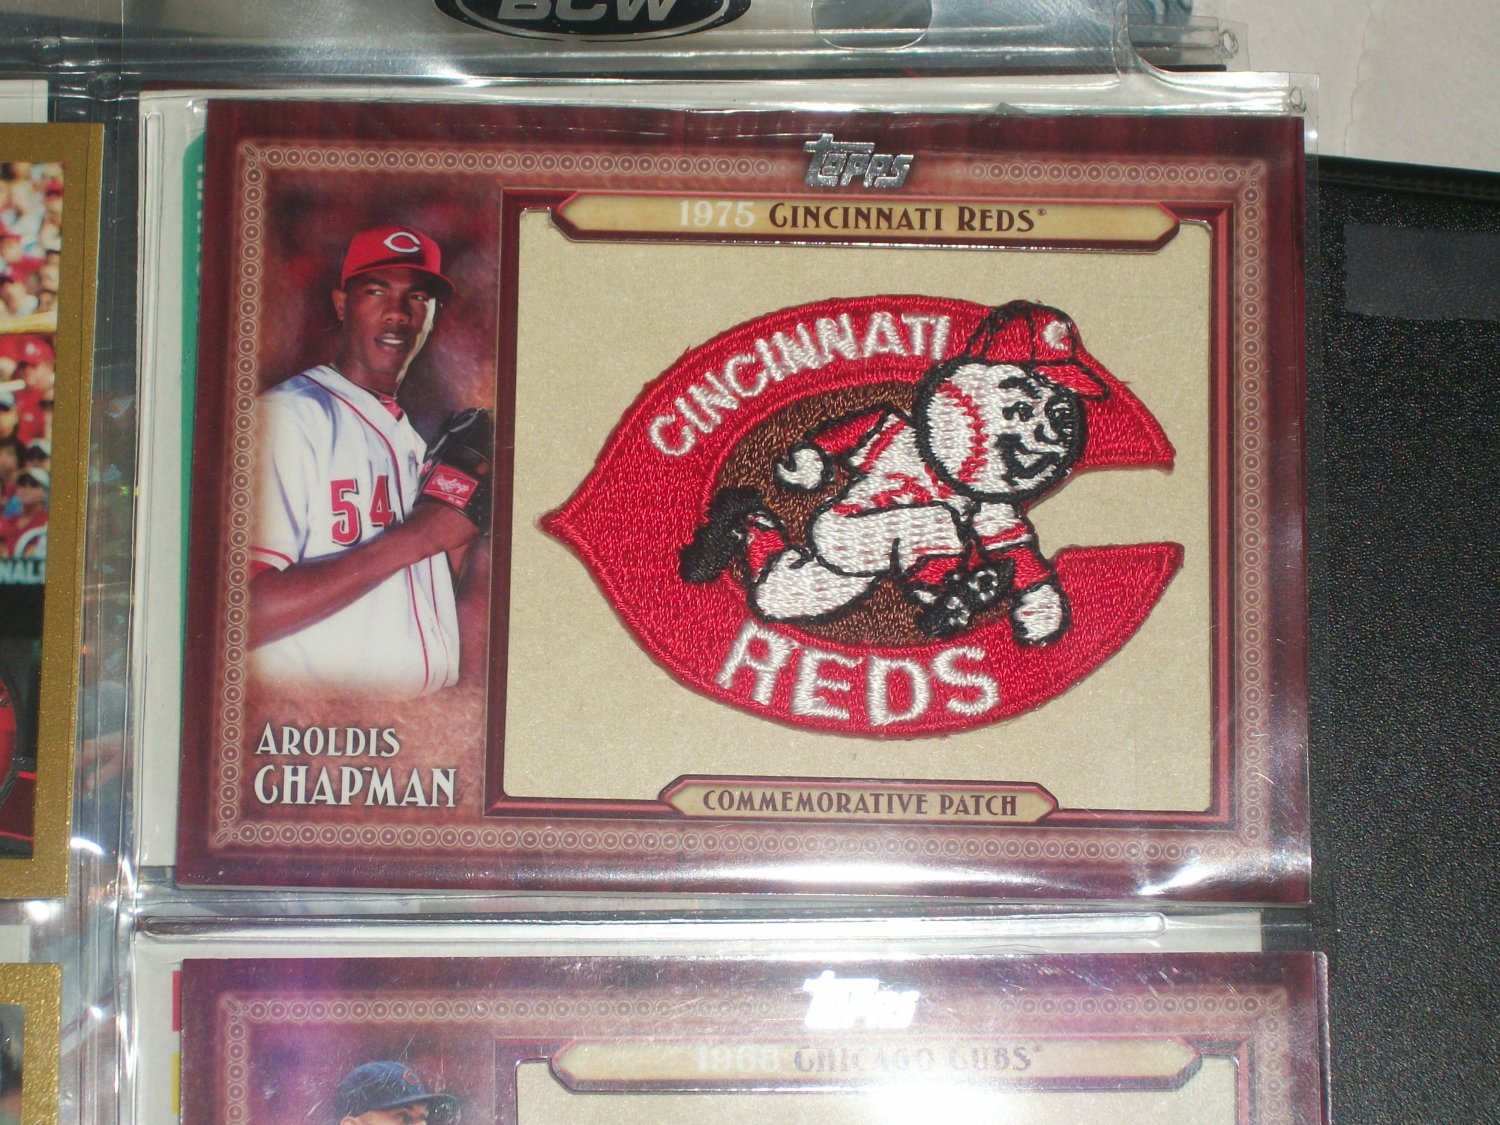 Aroldis Chapman 2011 Topps RARE REDS Throwback Manufactured Patch Card